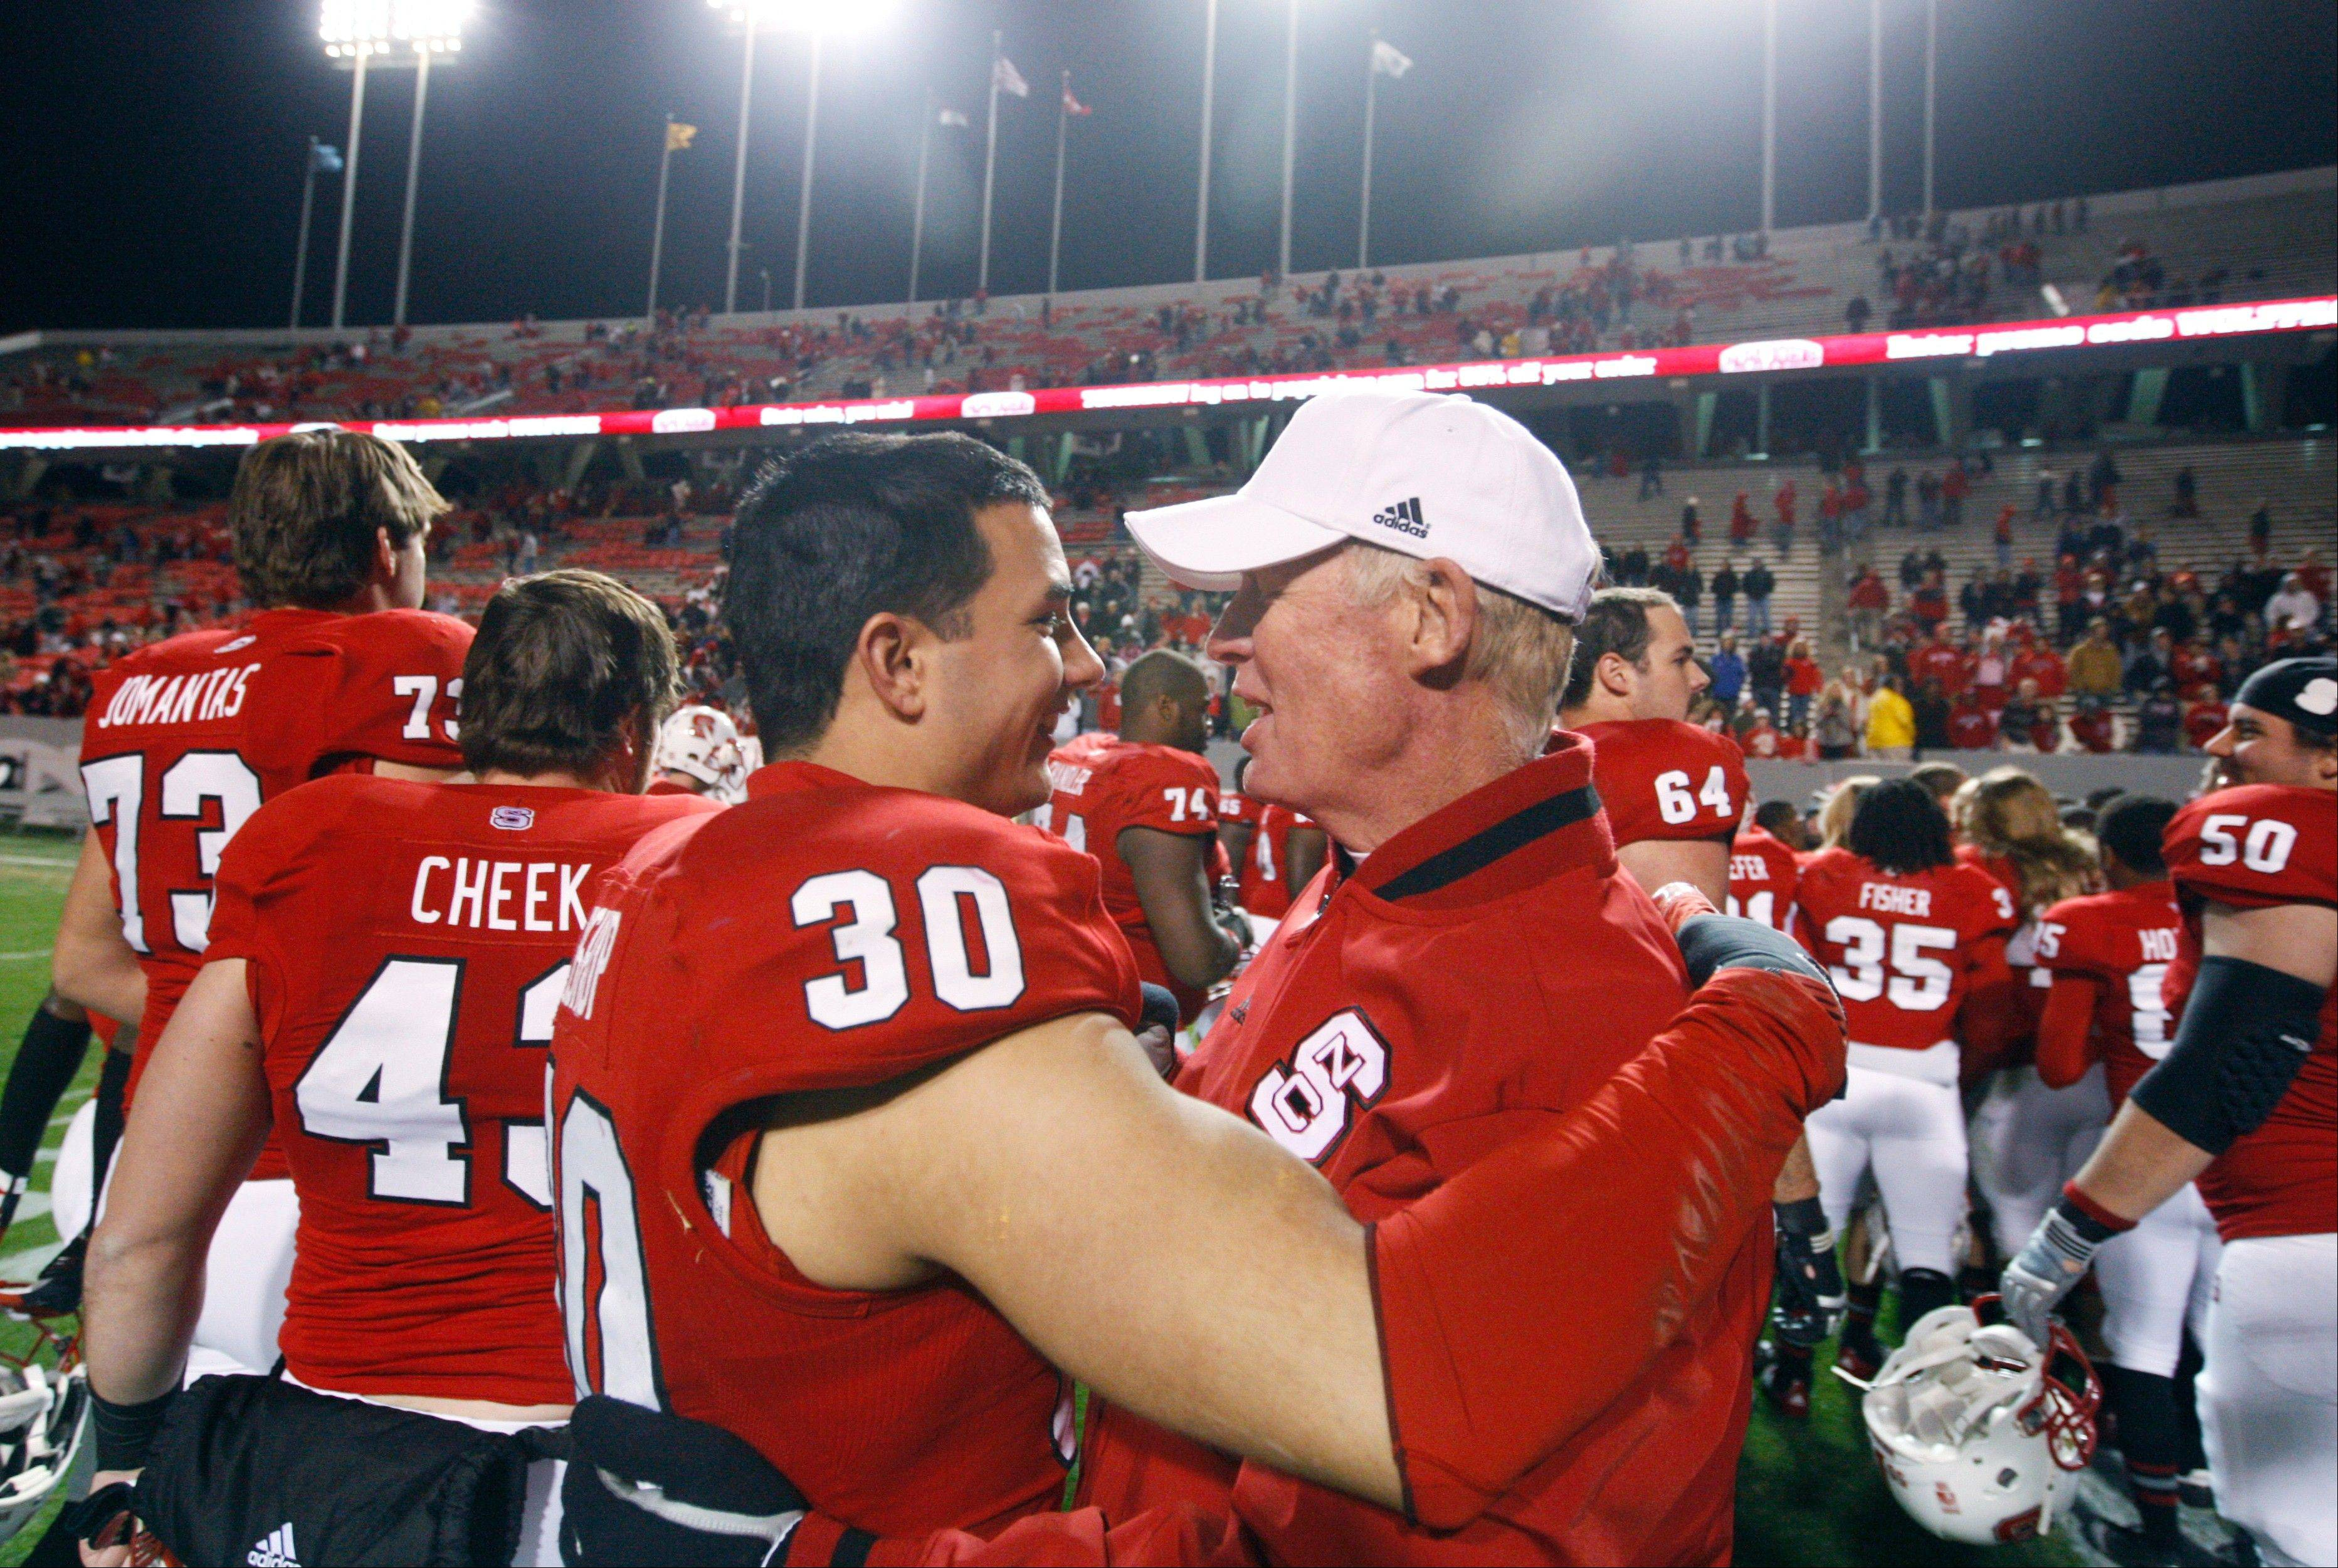 O'Brien out after 6 seasons at NC State